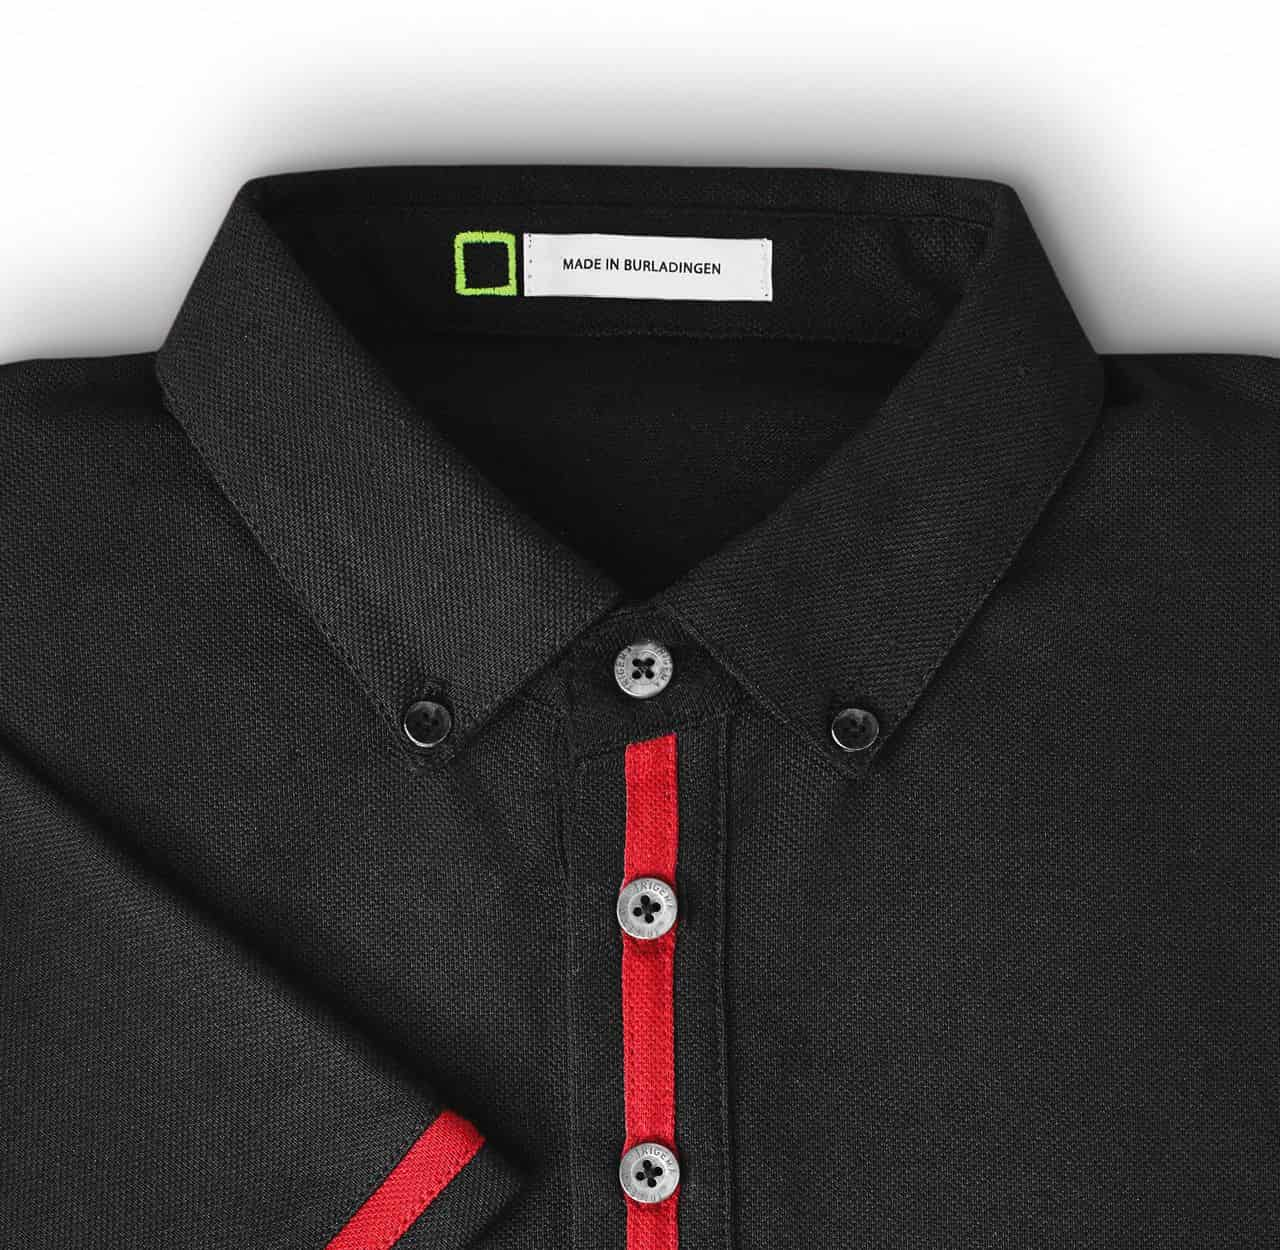 Trigema sustainable shirts